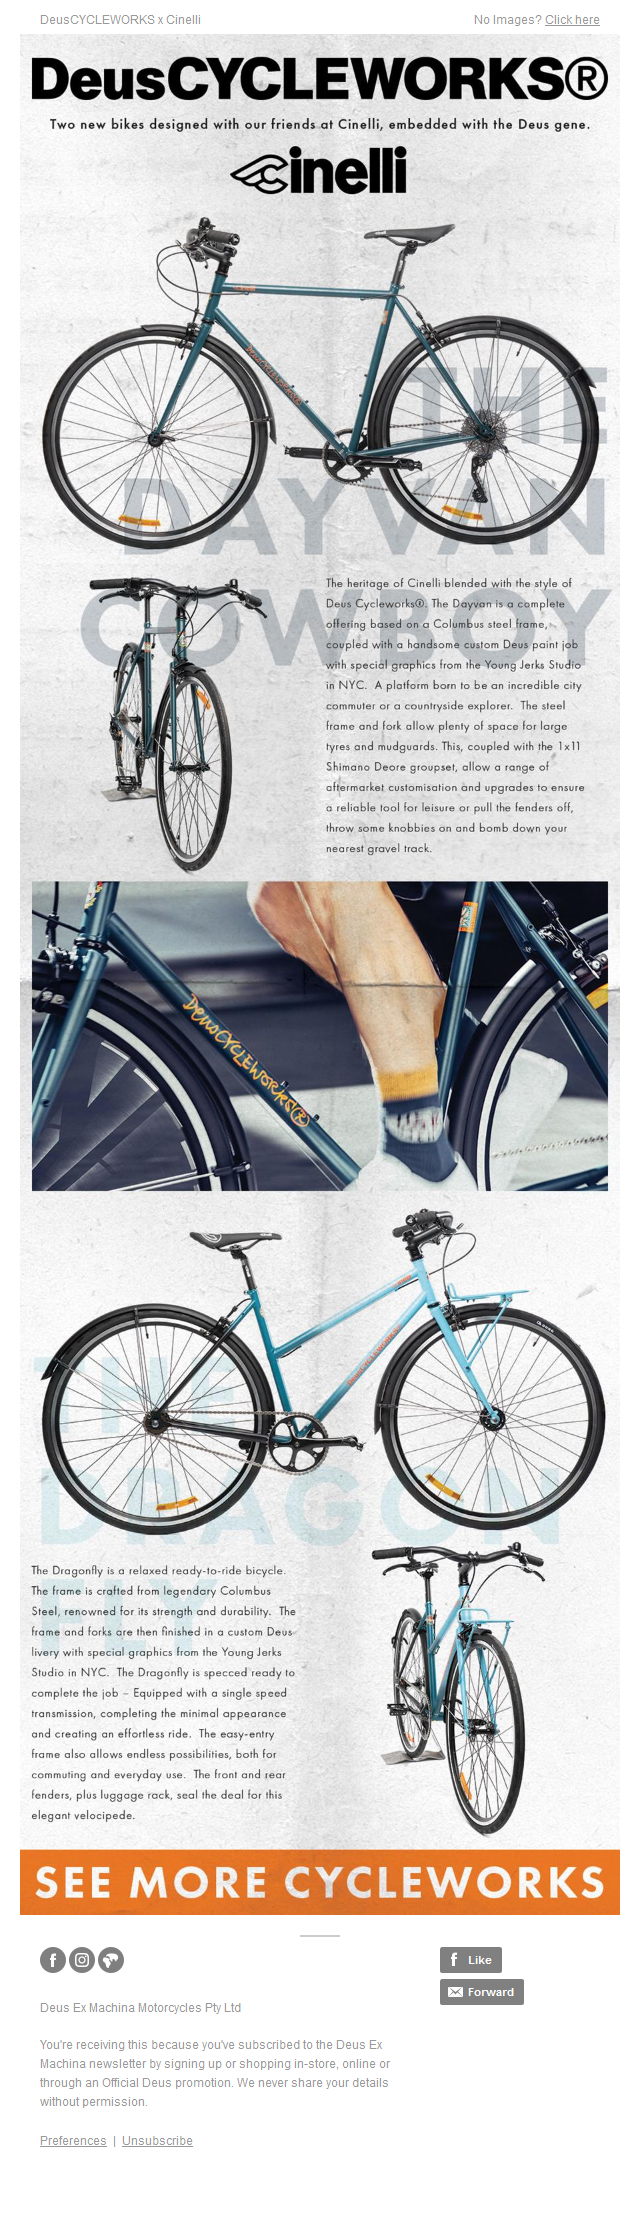 DeusCYCLEWORKS Bicycles - Limited Edition